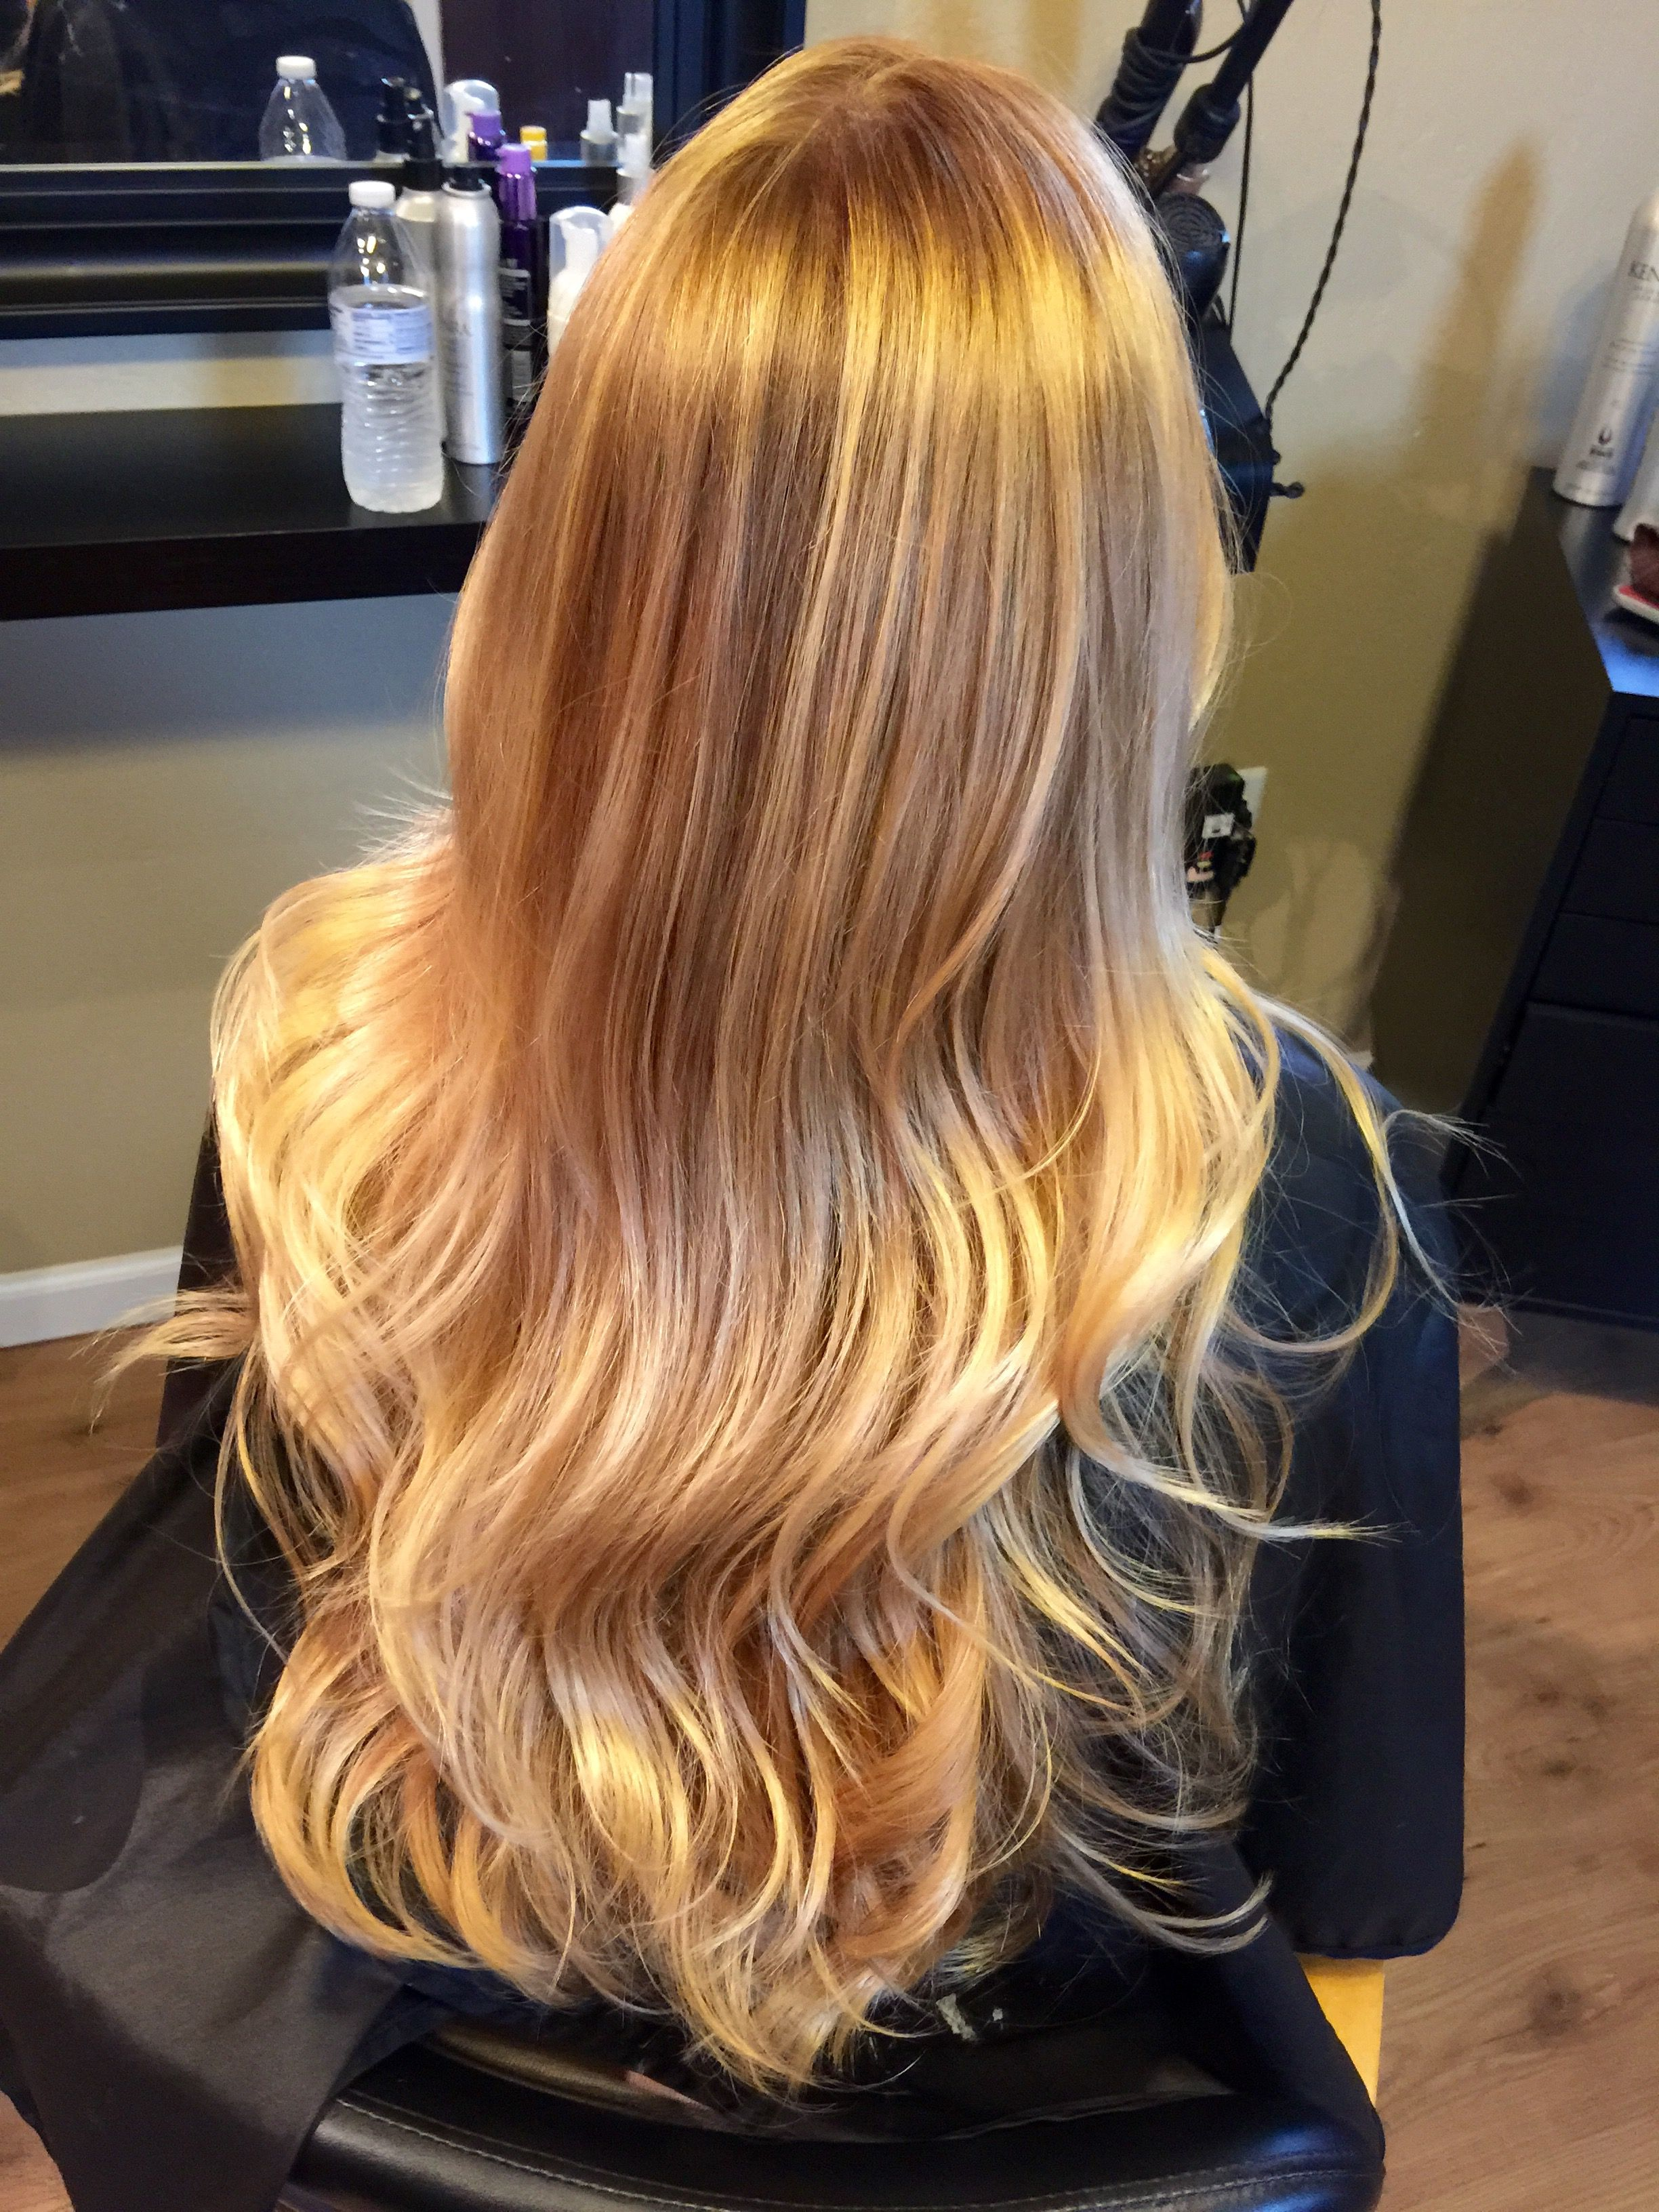 By TS Hair Studio Very natural golden blonde bayalage